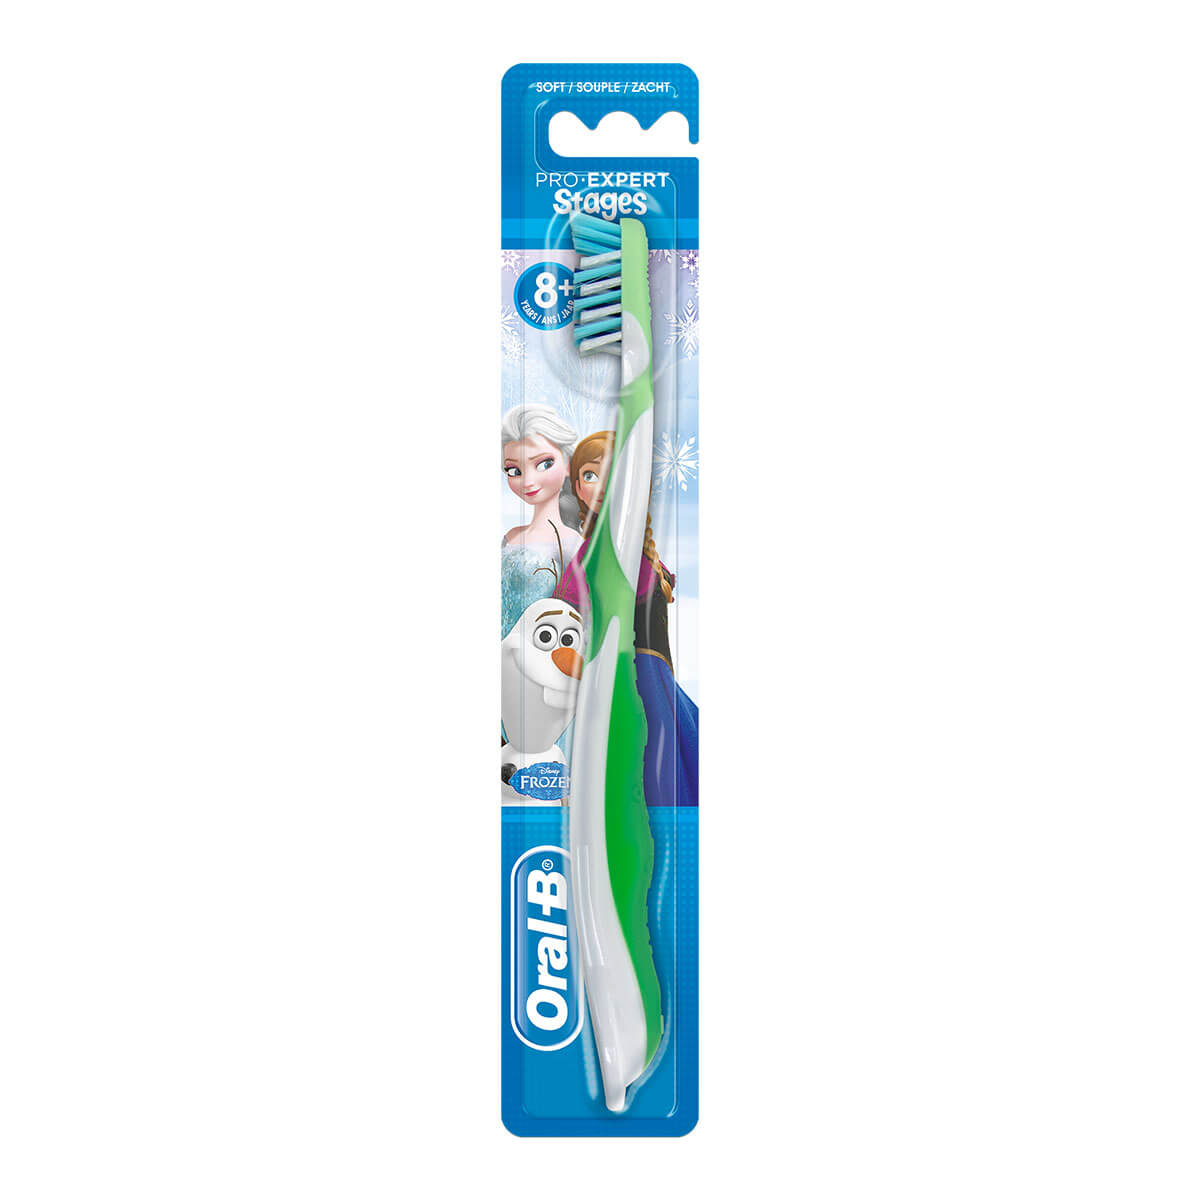 Oral-B Pro-Expert Stages Kids Manual Toothbrush featuring Disney Frozen